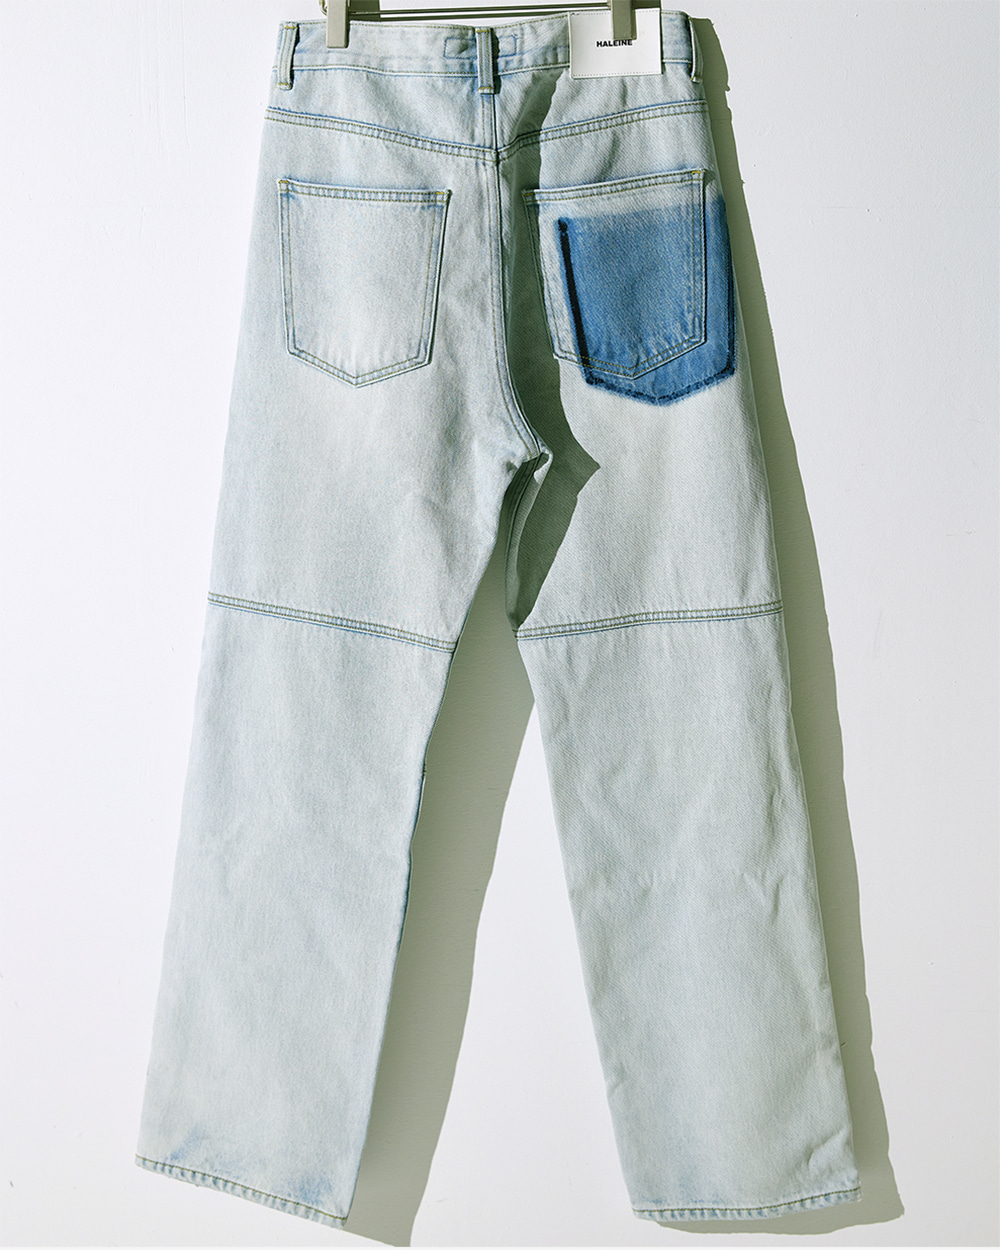 HALEINE알렌느 ICEBLUE semi wide stone washing jean(NB002)